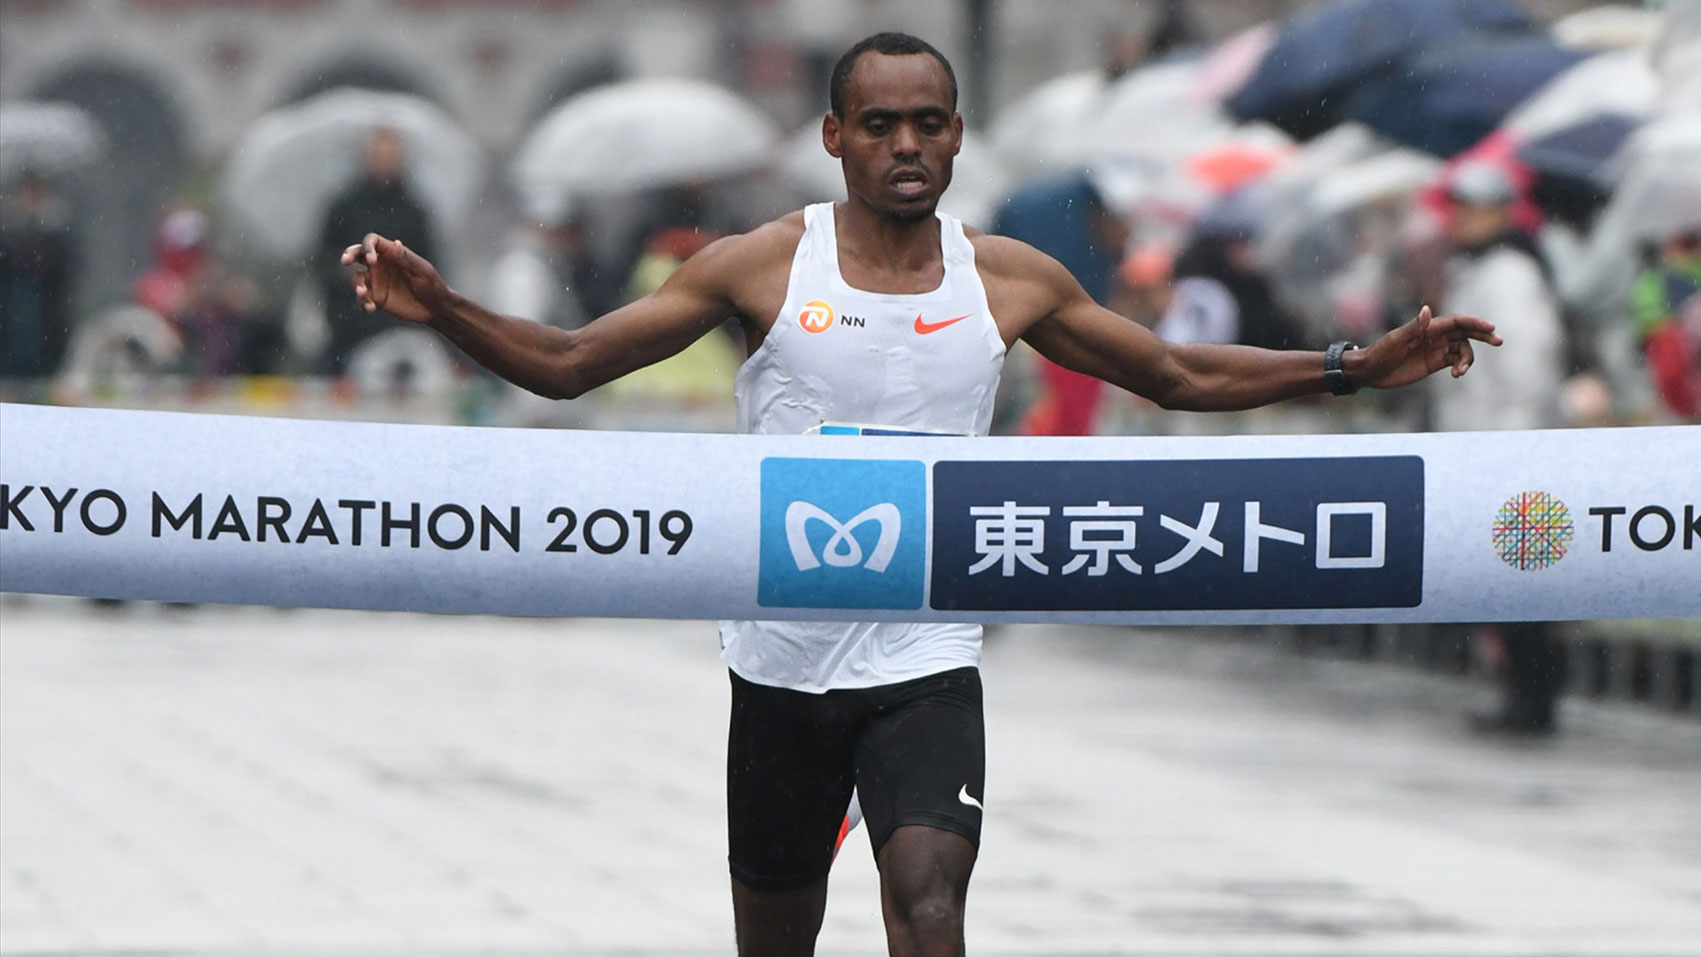 Legese tipped for sub 2:03 in Tokyo